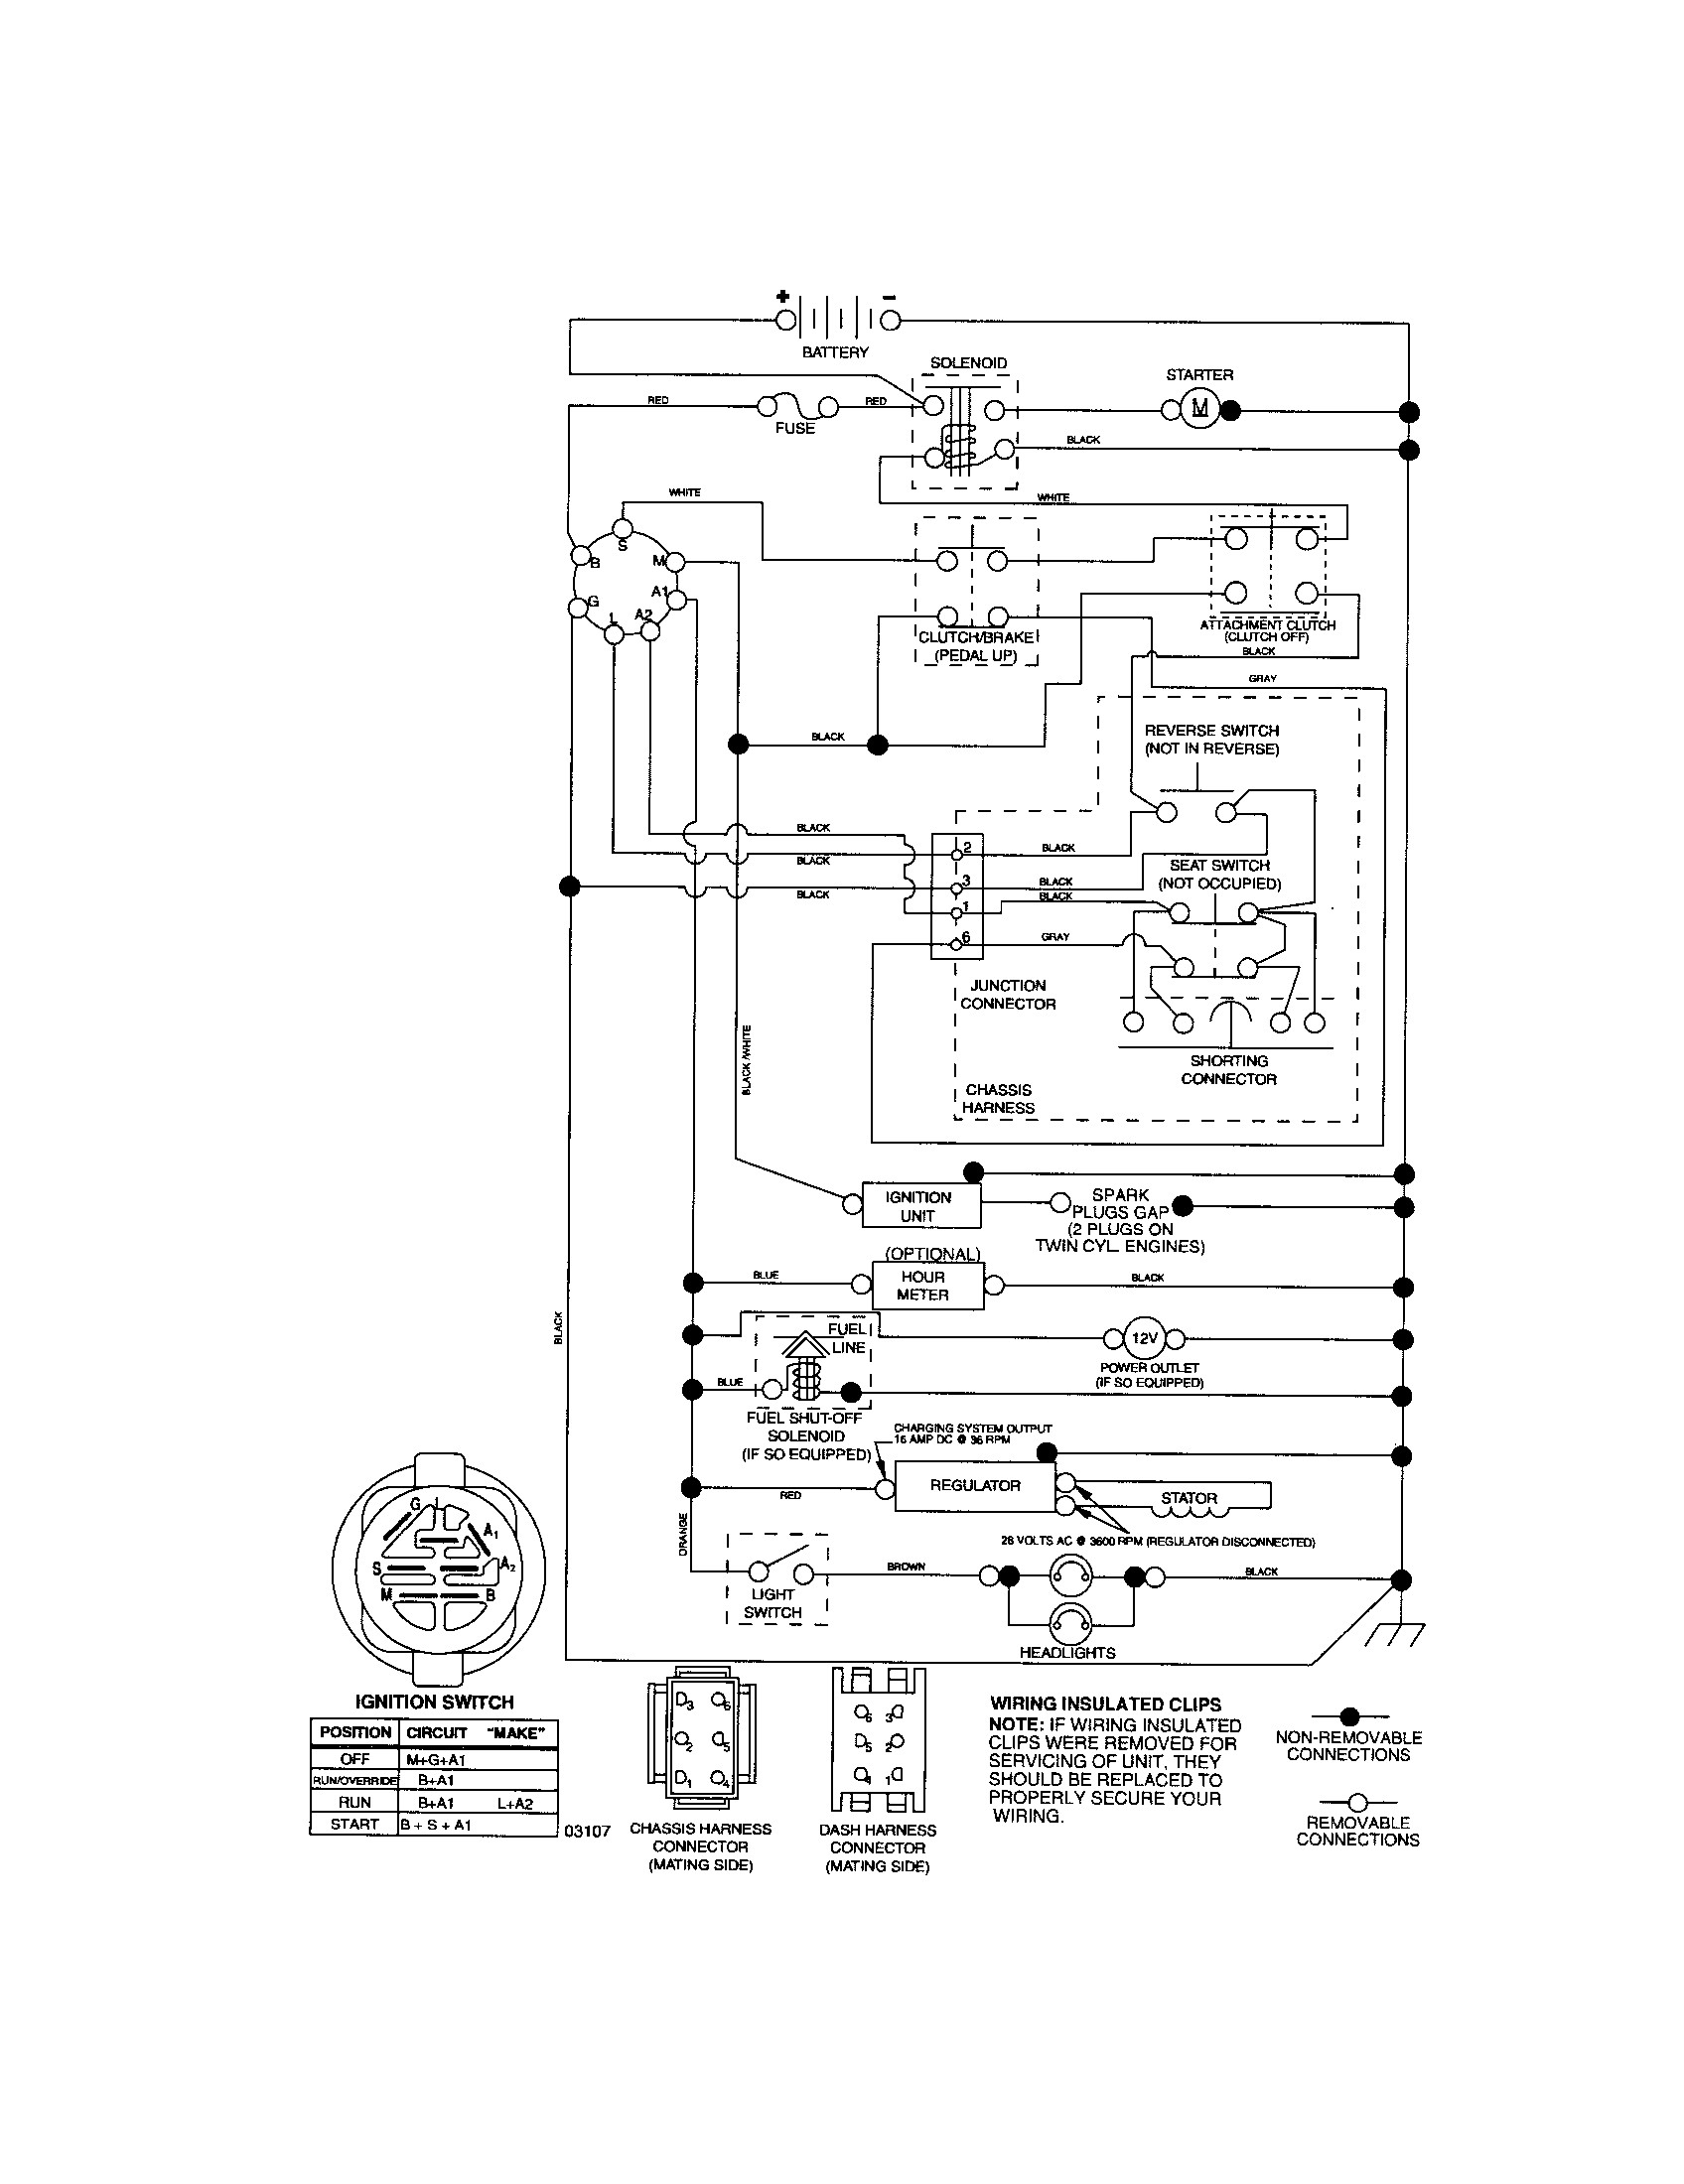 Wiring Diagram for A Craftsman Riding Mower Funky Craftsman Mower Wiring Diagram 917 Image Electrical Of Wiring Diagram for A Craftsman Riding Mower